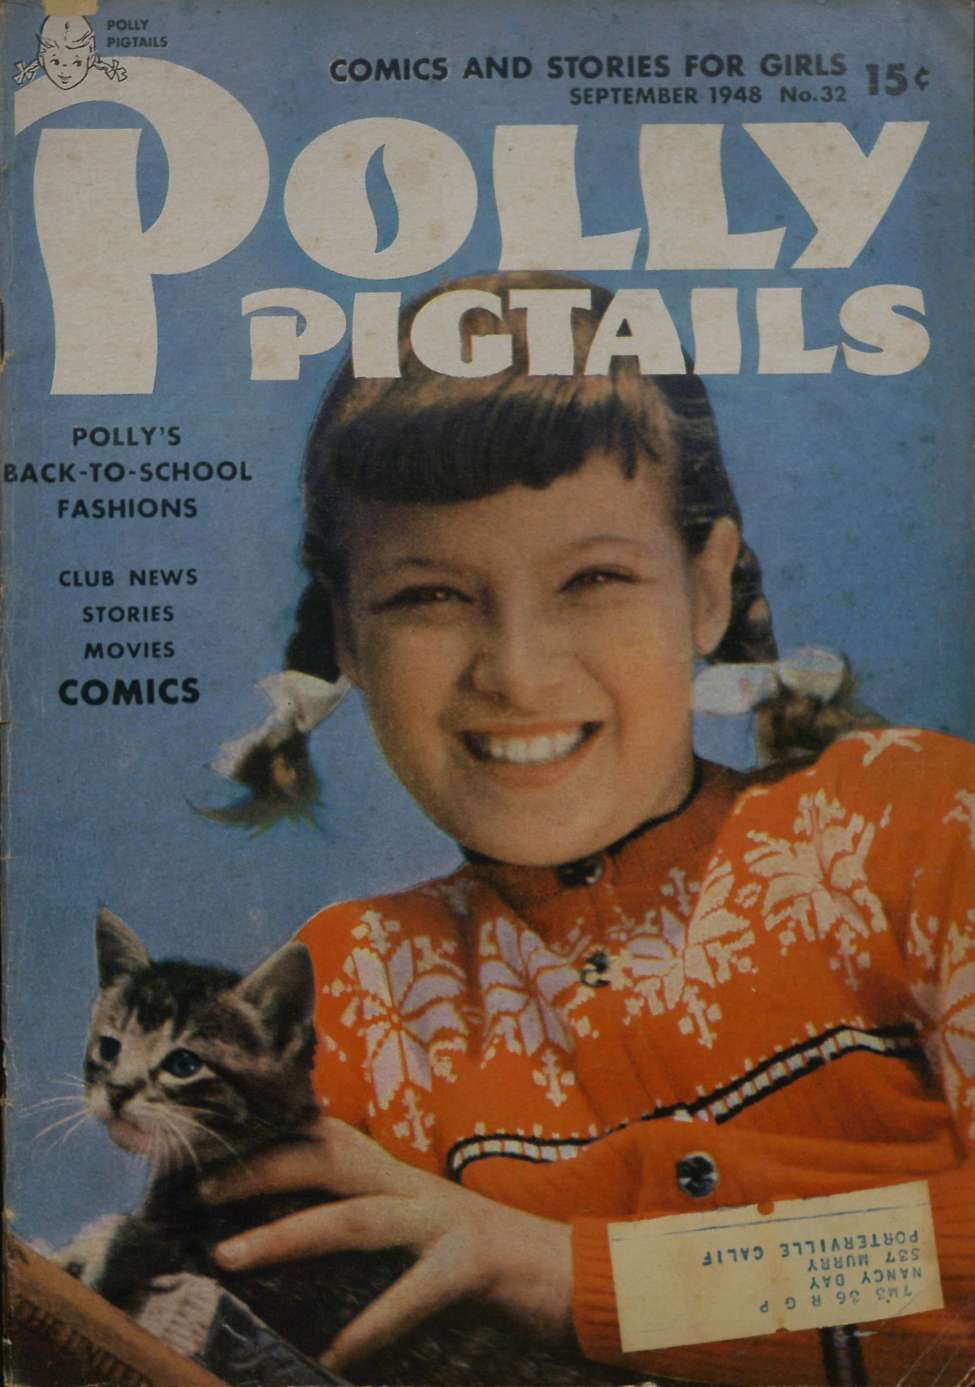 Comic Book Cover For Polly Pigtails #32